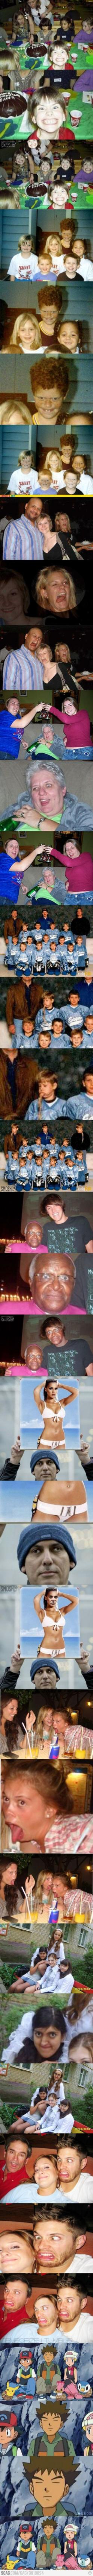 hahah dont know why but, couldnt stop laughing: Laughing So Hard, Giggle, Epic Faceswap, Face Swaps, Funny Stuff, Funny Faces, So Funny, Can'T Stop Laughing